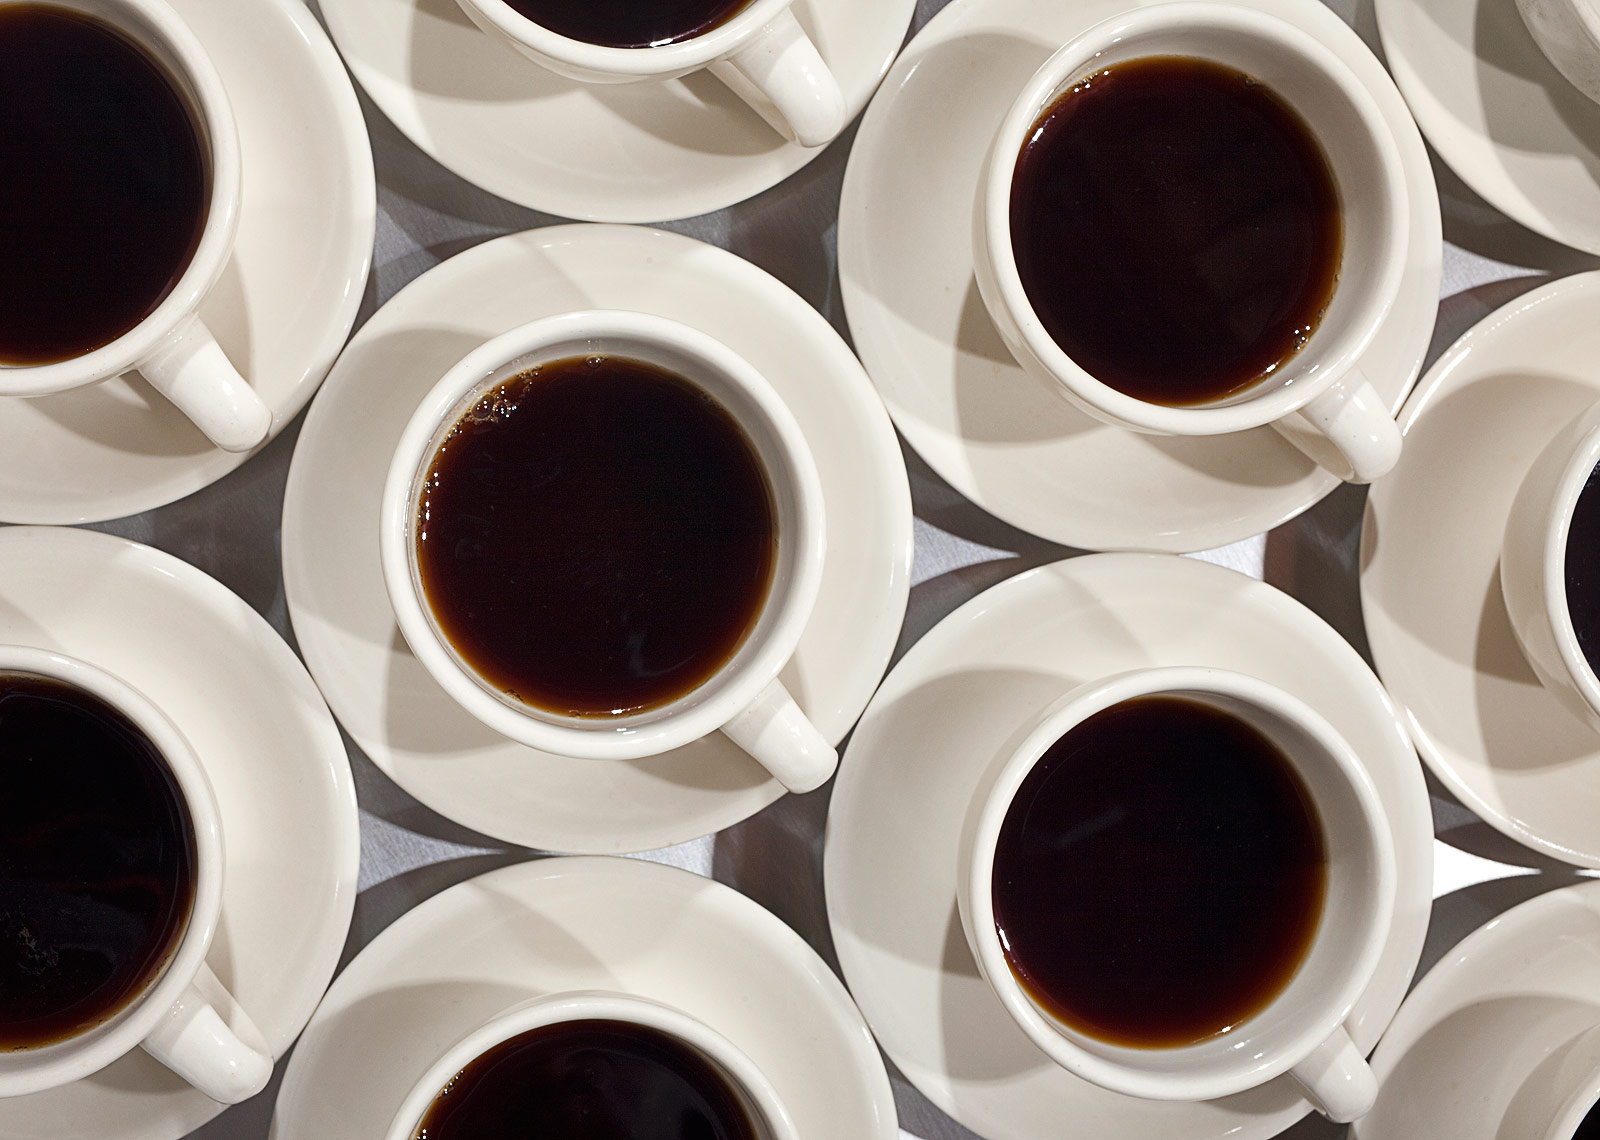 Coffee cups in a row food photography by John Kuczala